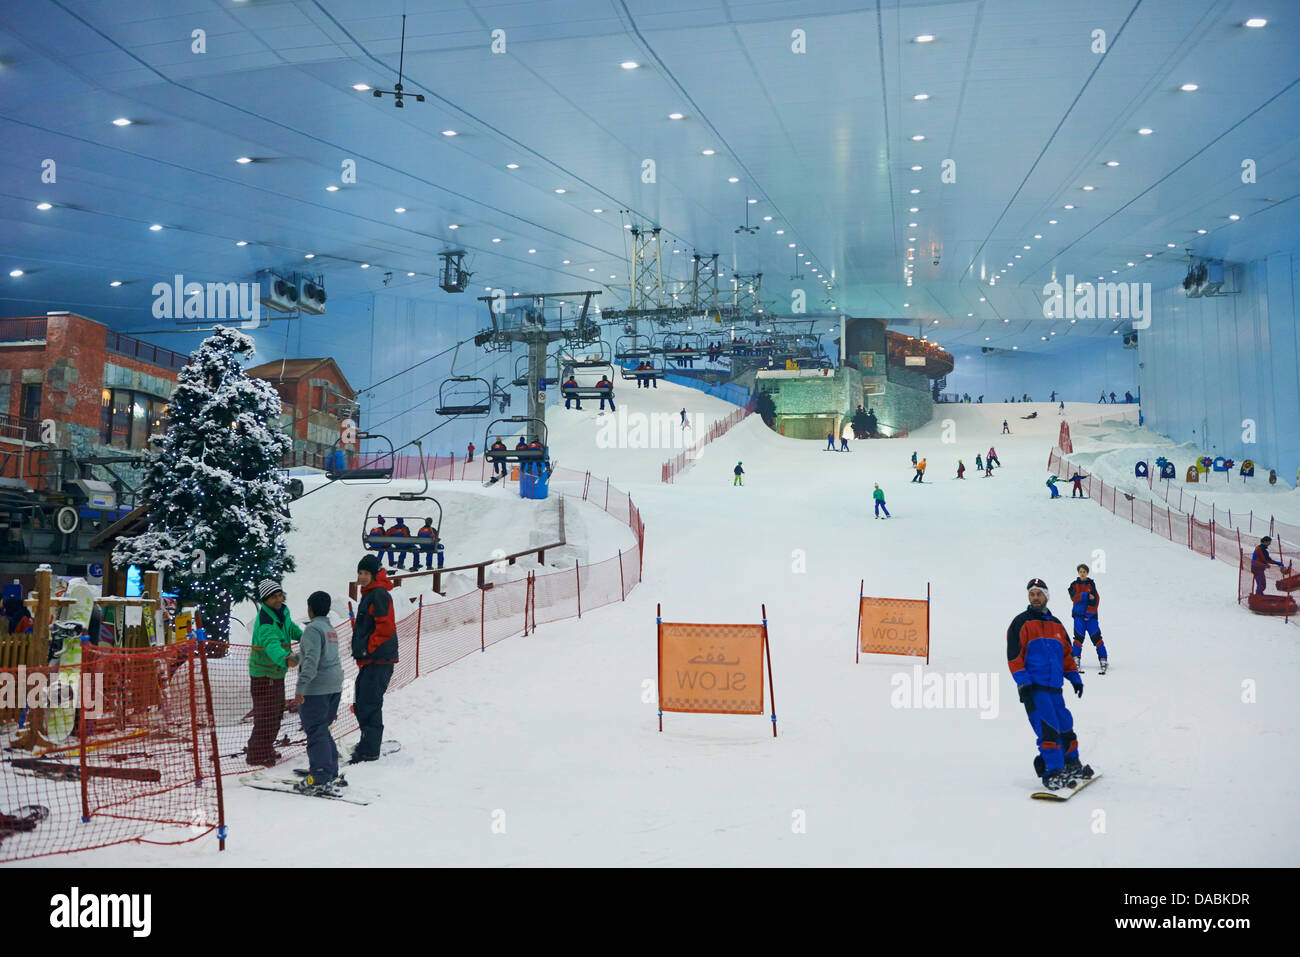 Ski Dubai Mall Of The Emirates Commercial Center United Arab